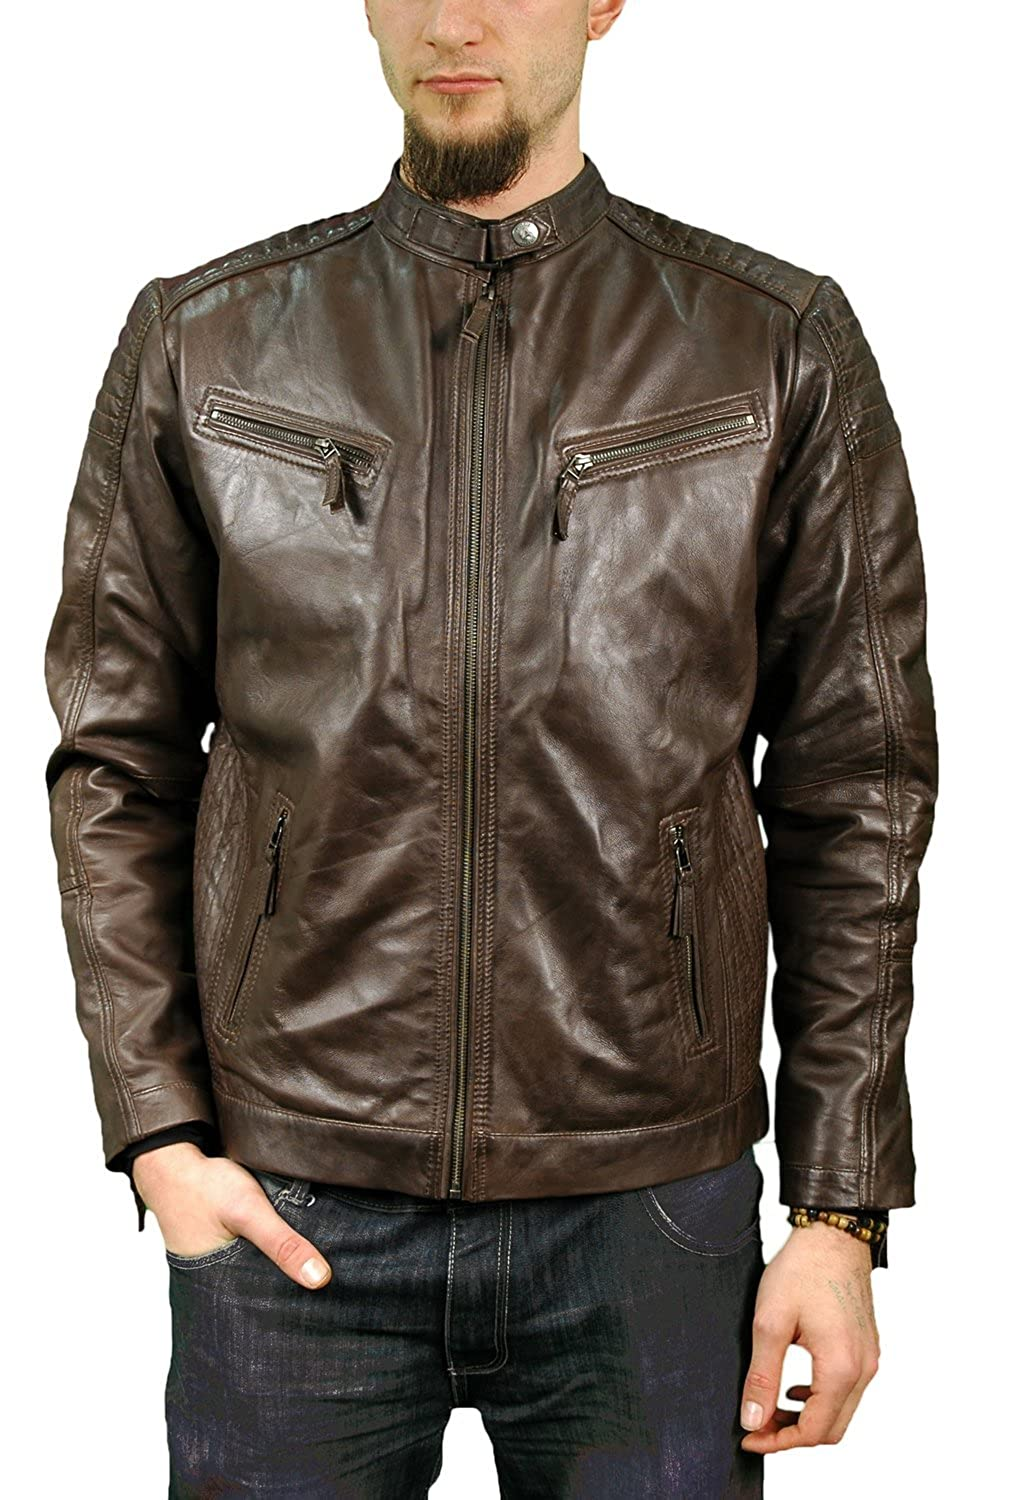 Mens Fitted Retro Style Zipped Dark Brown Leather Biker Jacket